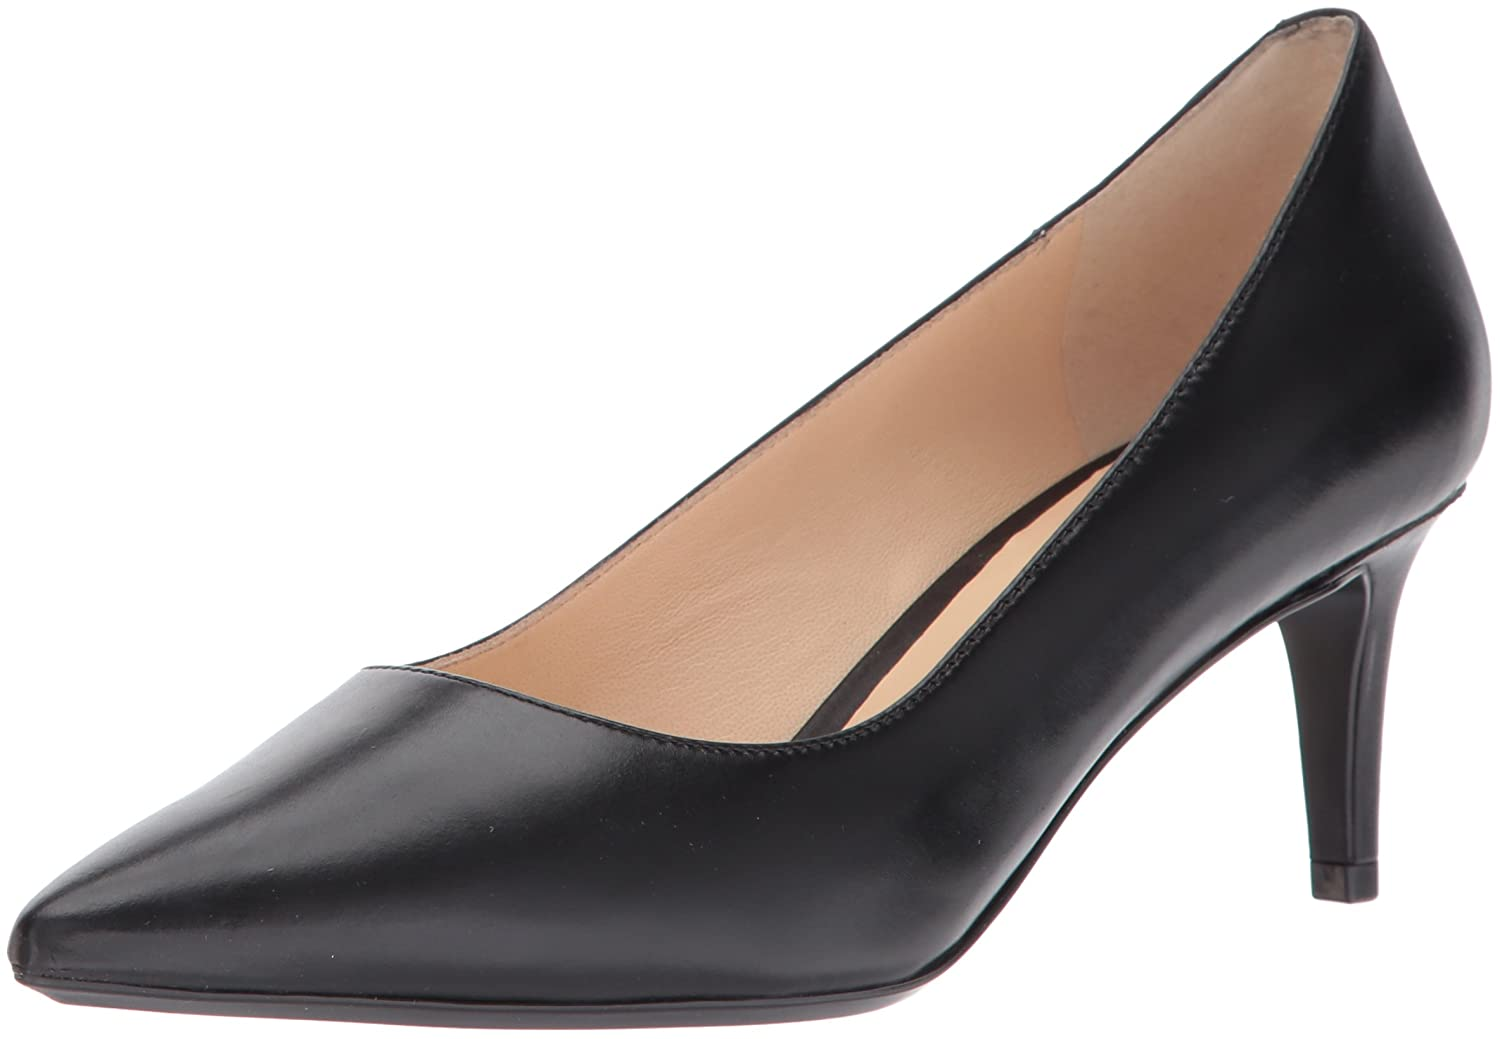 Nine West Women's SOHO9X9 Leather Pump B01MXVCEN9 11 B(M) US|Black